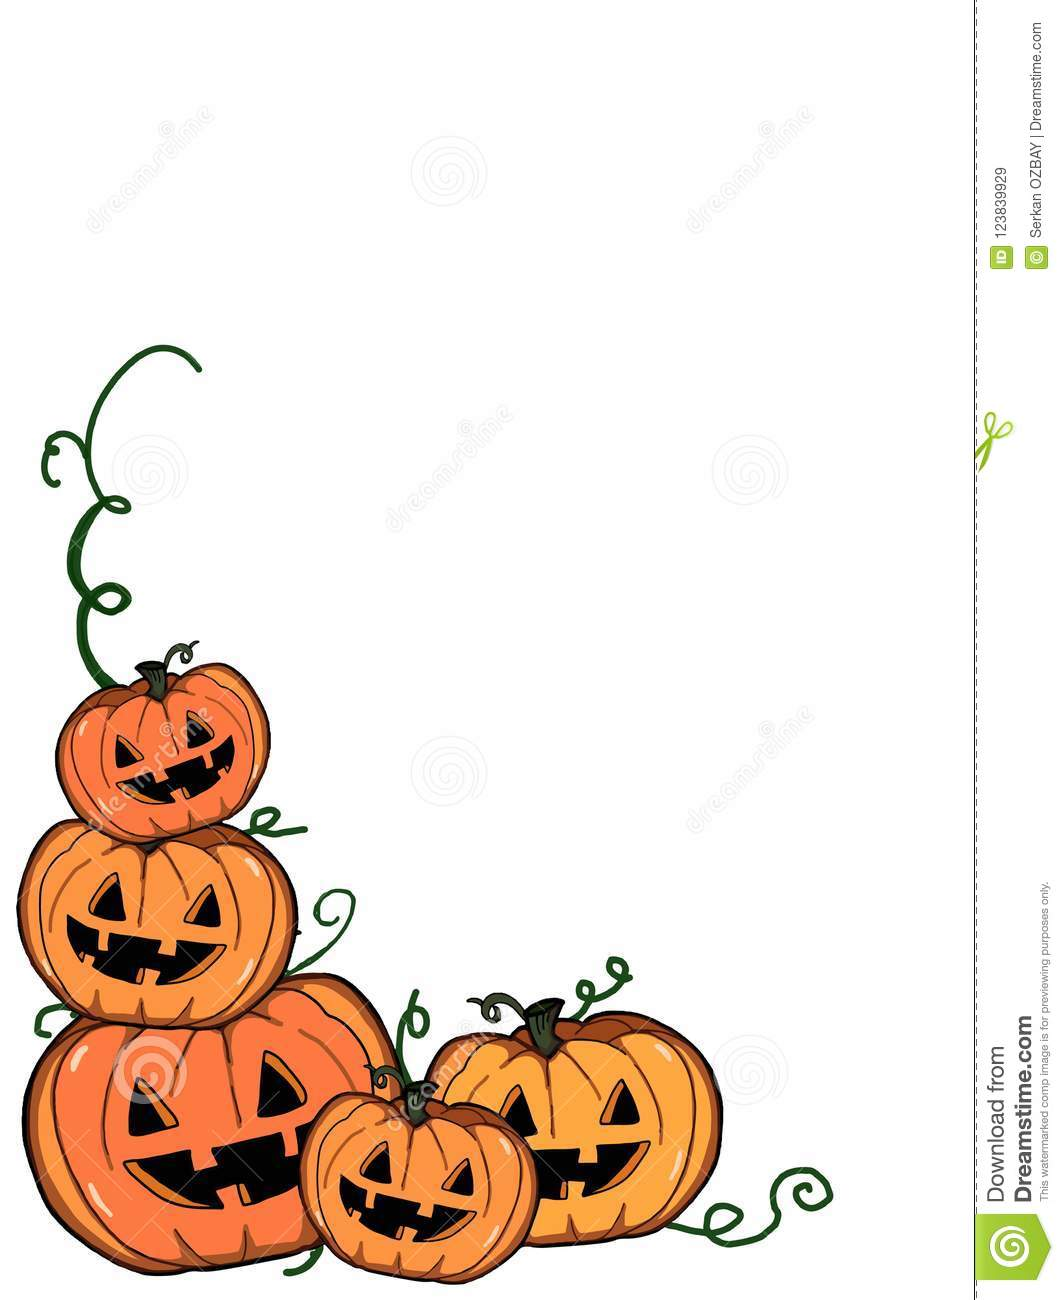 Halloween Pumpkin Drawing Picture.Halloween Pumpkin Illustration Drawing White Backgroun Stock